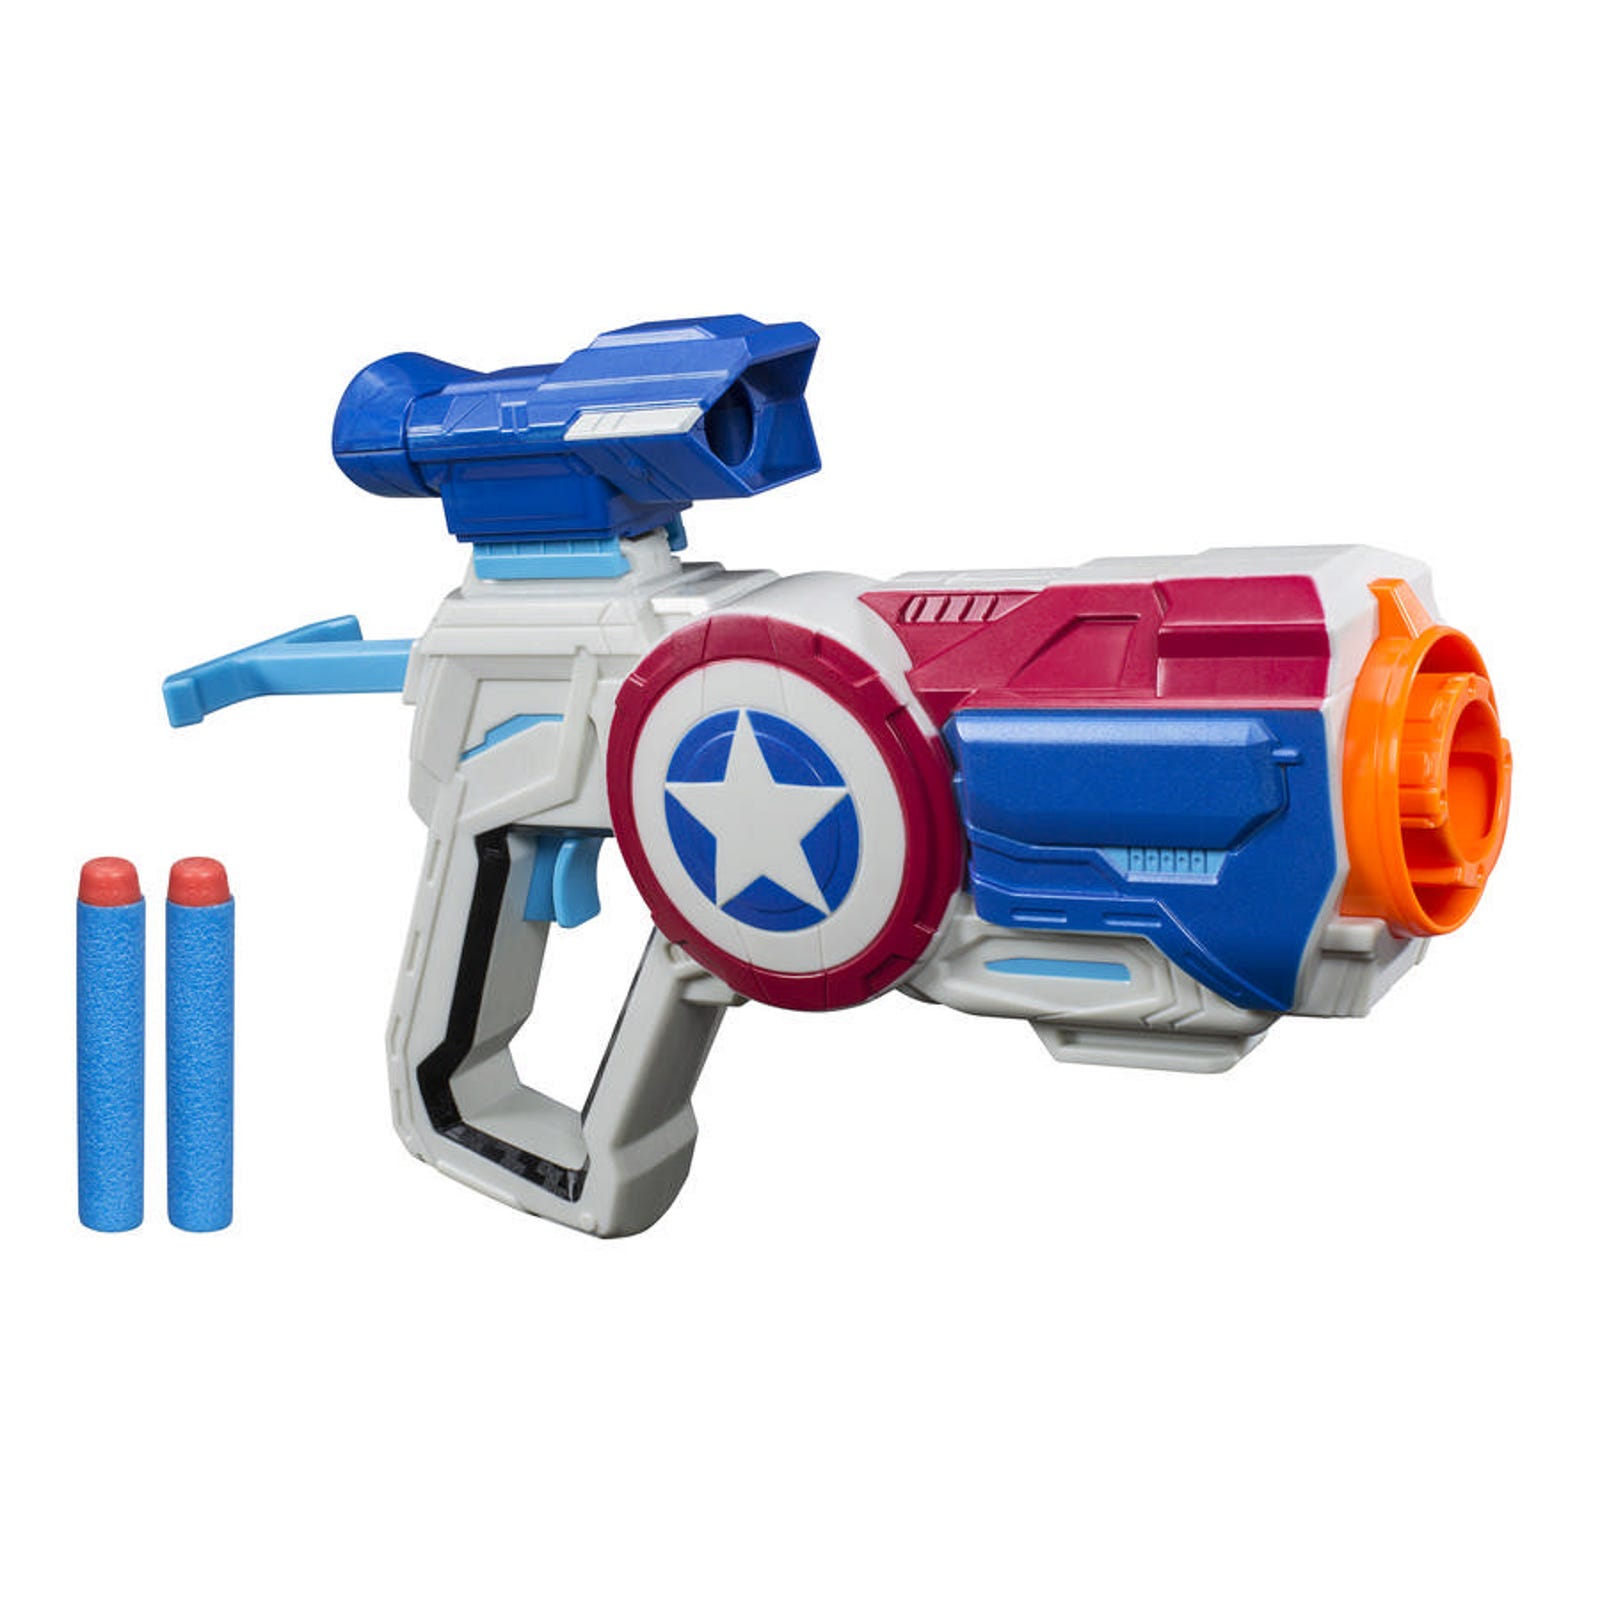 Not content with a shield-gun, Steve also gets a gun-gun. This line will set you back $25 apiece.